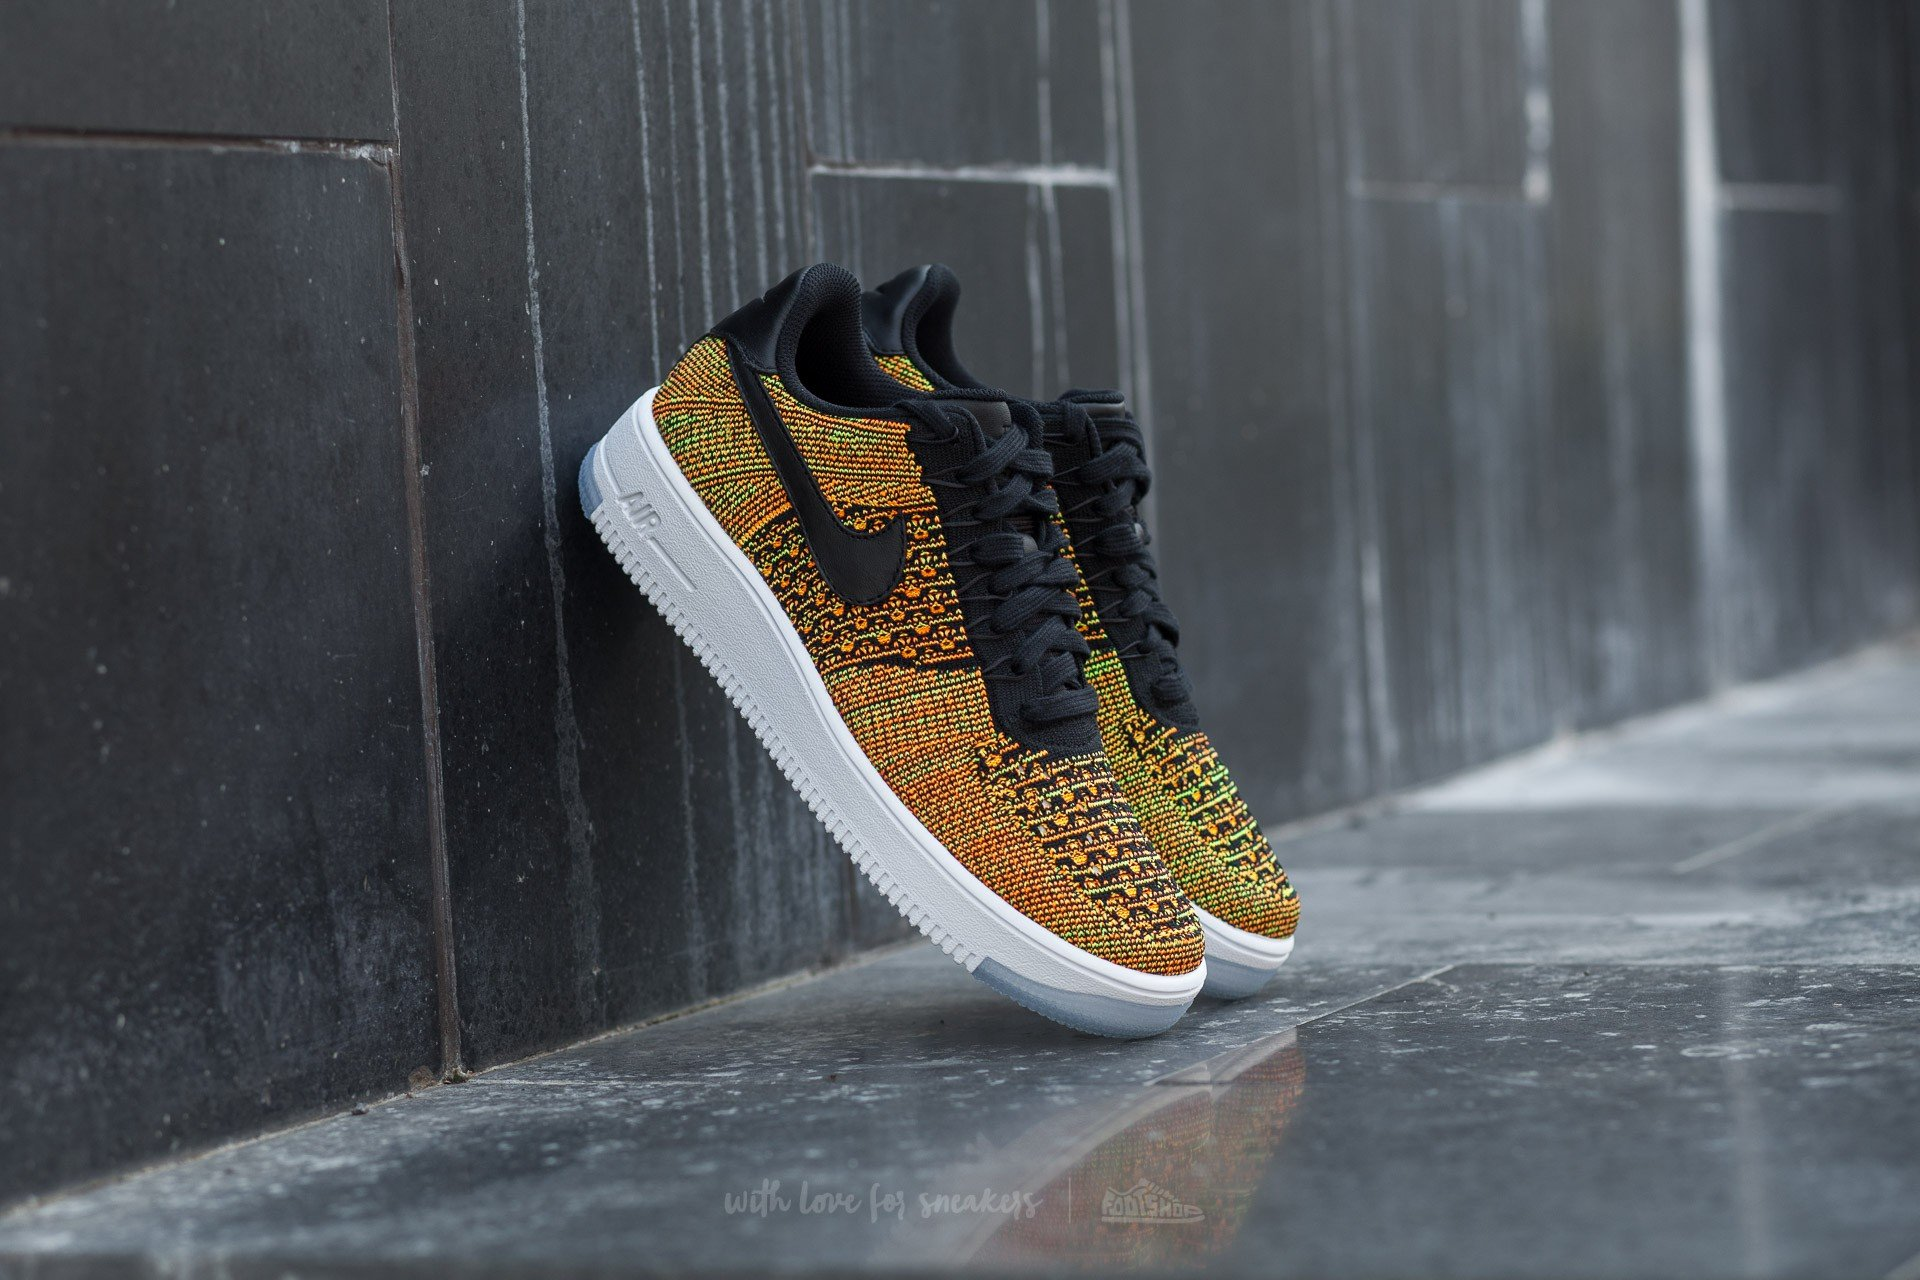 reputable site f6712 6561c Nike Air Force 1 Ultra Flyknit Low. Volt Black-Total Orange-White